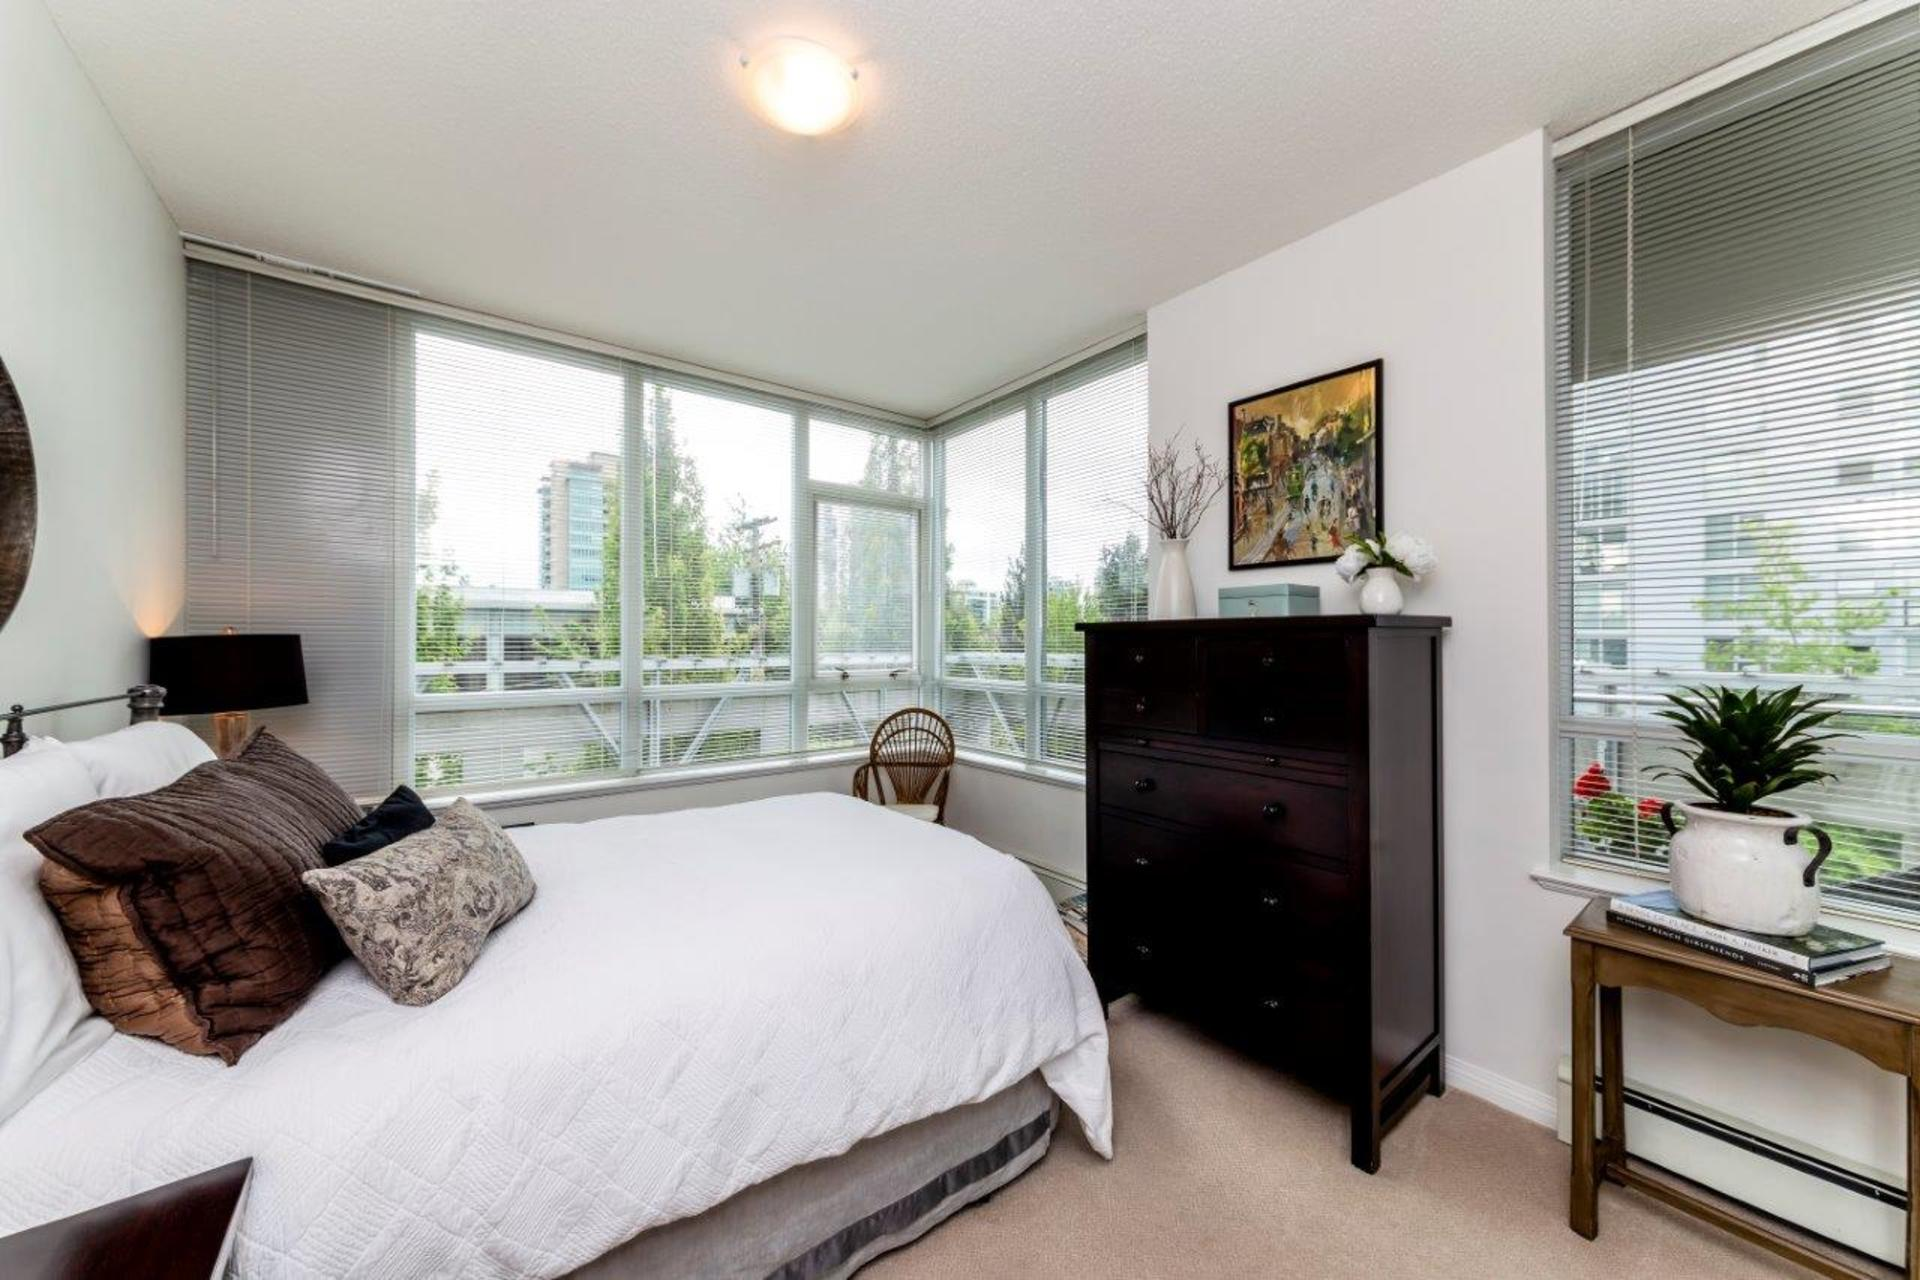 305-120w16-1 at 305 - 120 West 16th, Central Lonsdale, North Vancouver